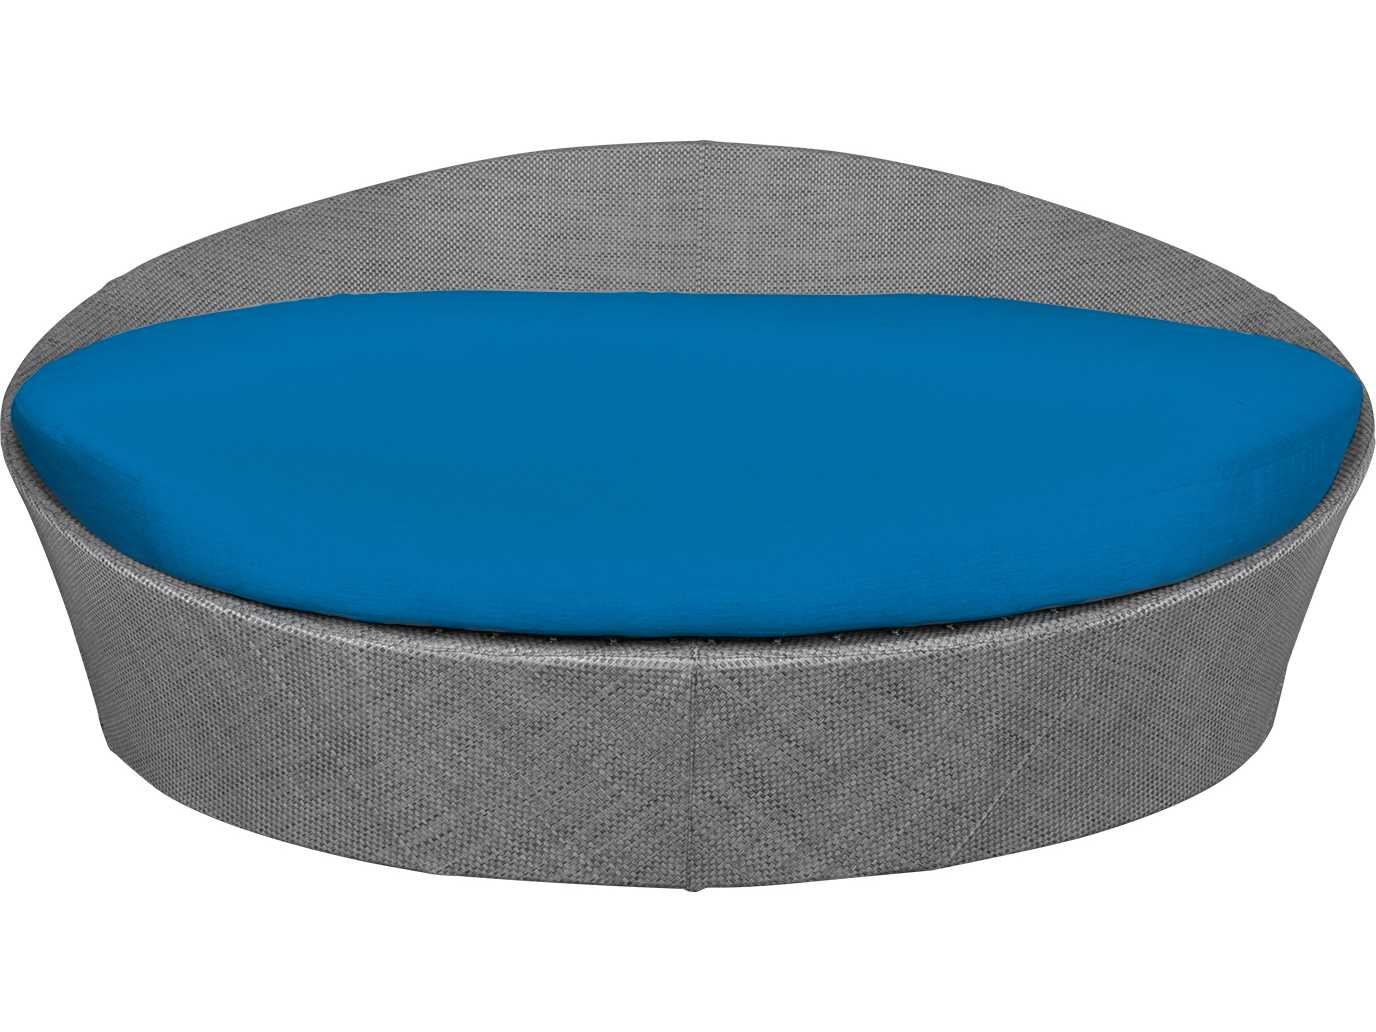 round chair cushions 14 inch hanging for living room source outdoor furniture aqua large daybed